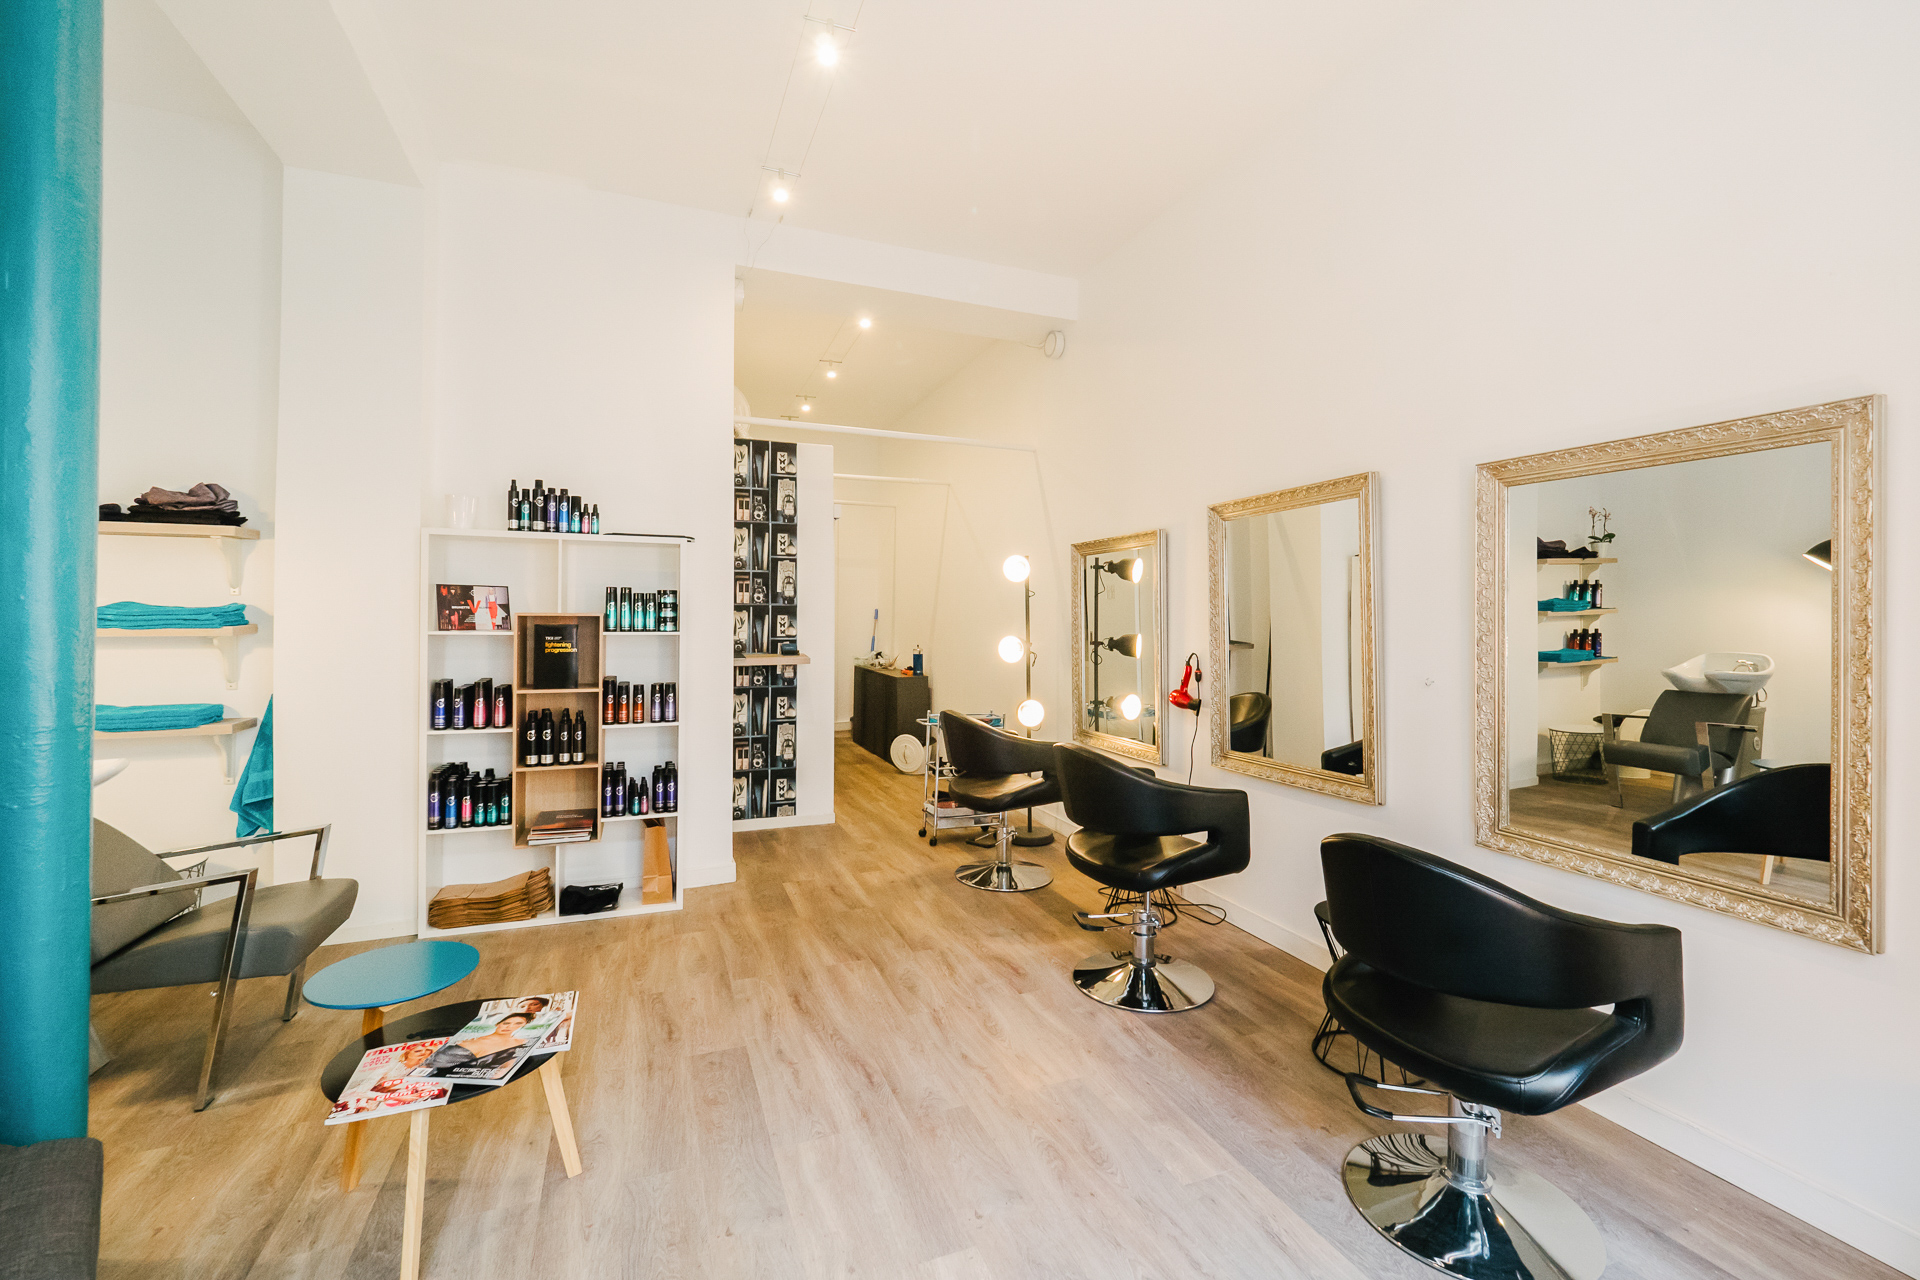 Salon Coiffure Paris 13 Best English Speaking Hair Salon In Paris With English Speaking